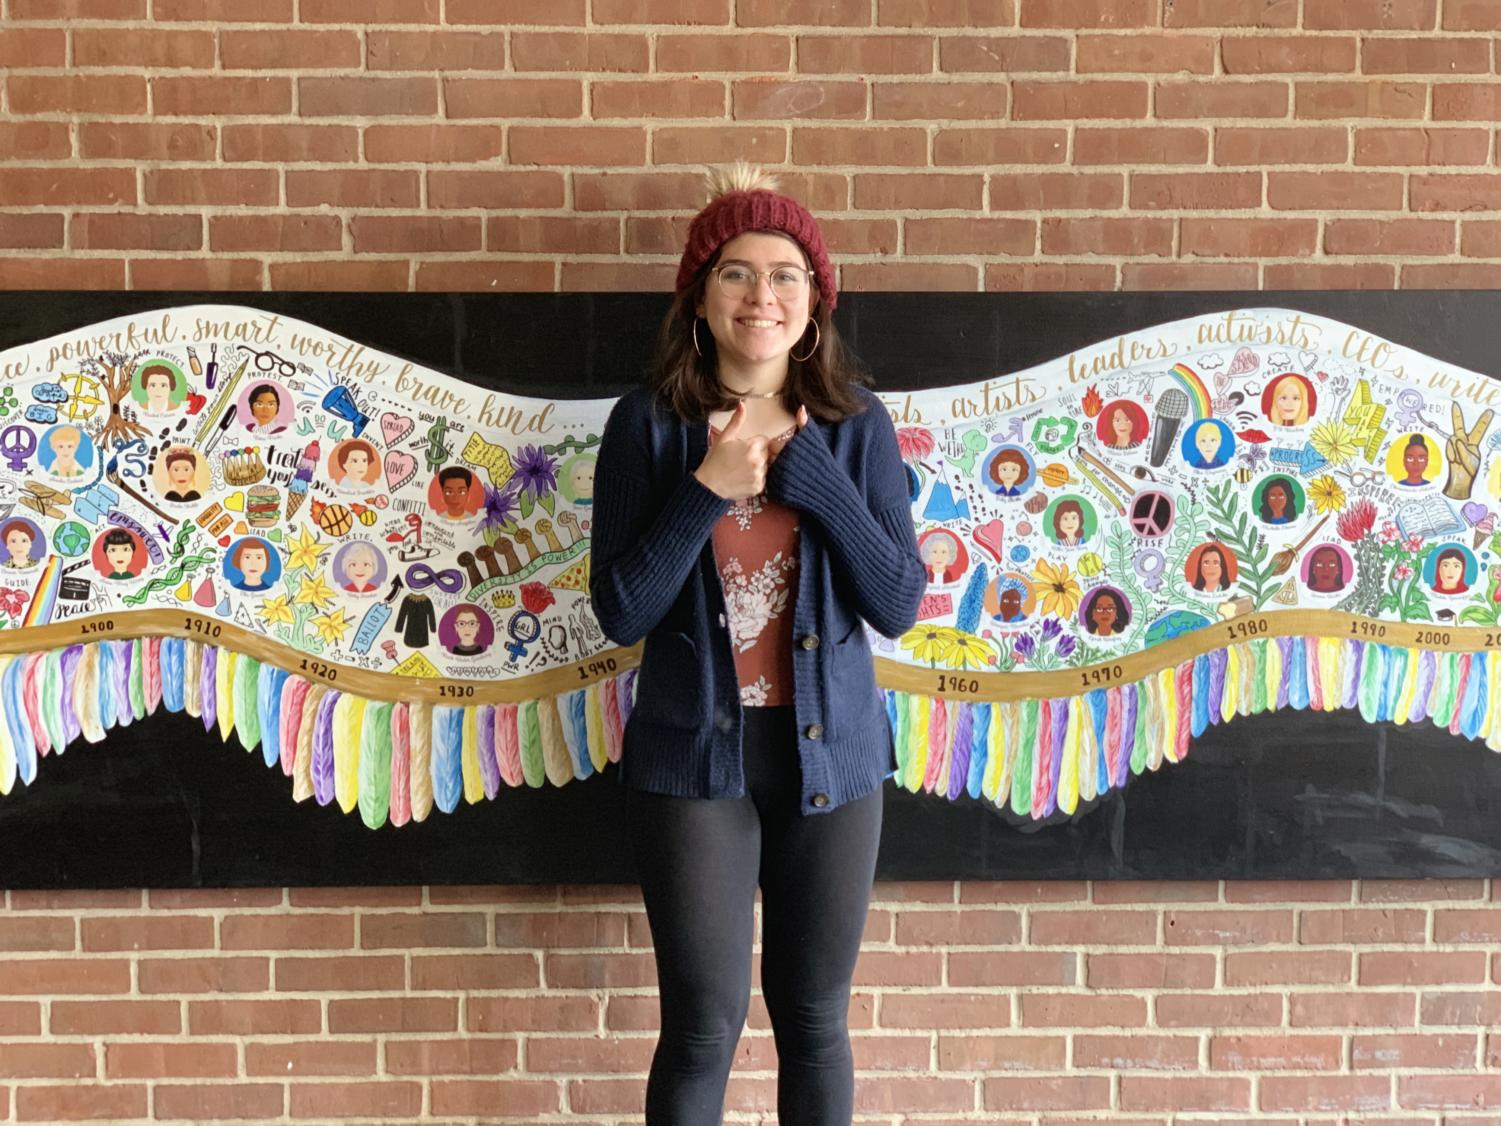 Spreading my wings-- Junior Sophie Shack smiles for a picture in front of a mural she designed for her Government and Law class. The project features 30 famous women and can be found in the alcove near the library and cafeteria. Viewers can center themselves between the wings and become a part of the narrative.